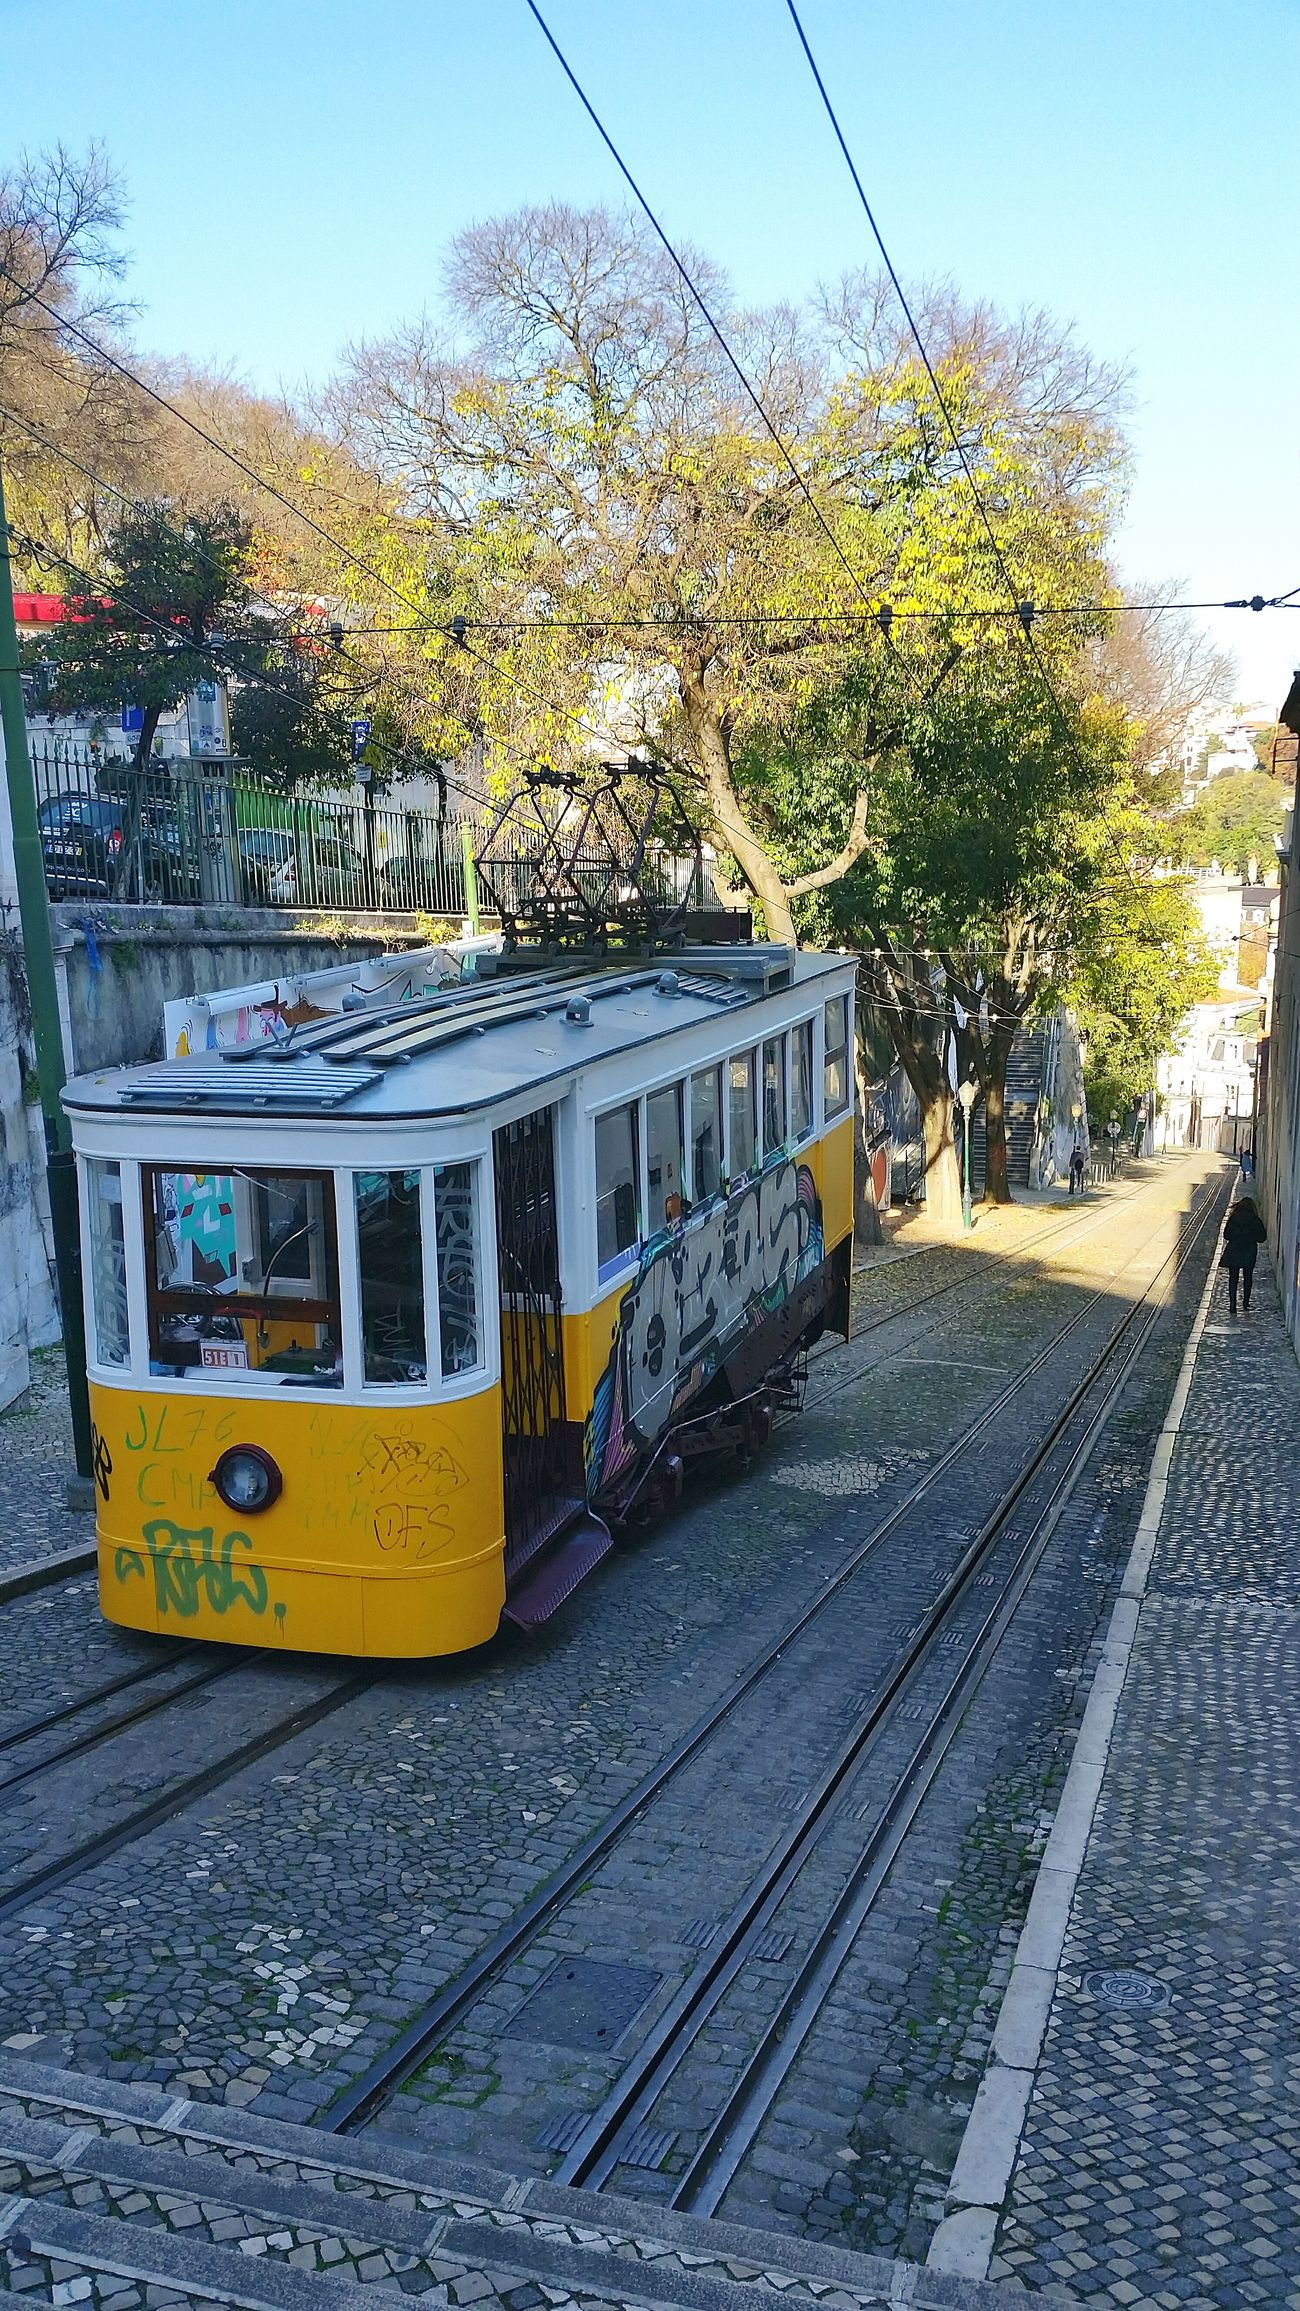 Transportation Public Transportation Rail Transportation Railroad Track Mode Of Transport Cable Car Yellow Train - Vehicle City Outdoors Sky Tree Tram No People Day Carris